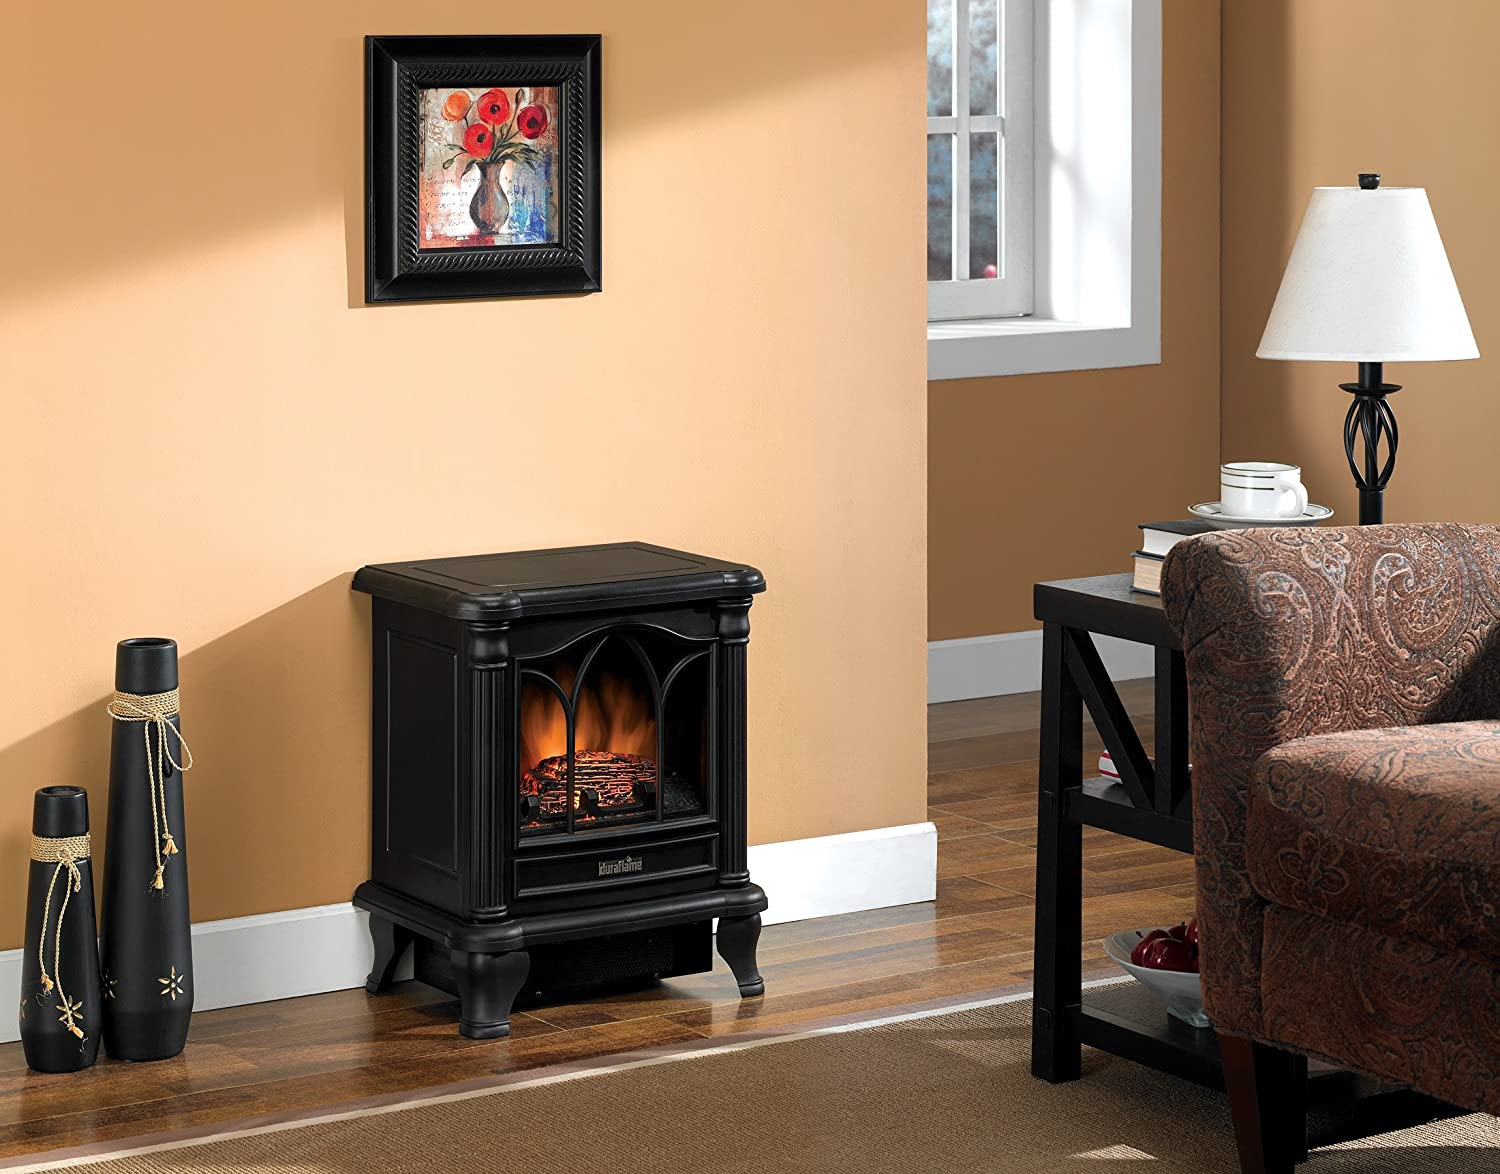 Amazon.com: Duraflame DFS-450-2 Carleton Electric Stove with ...